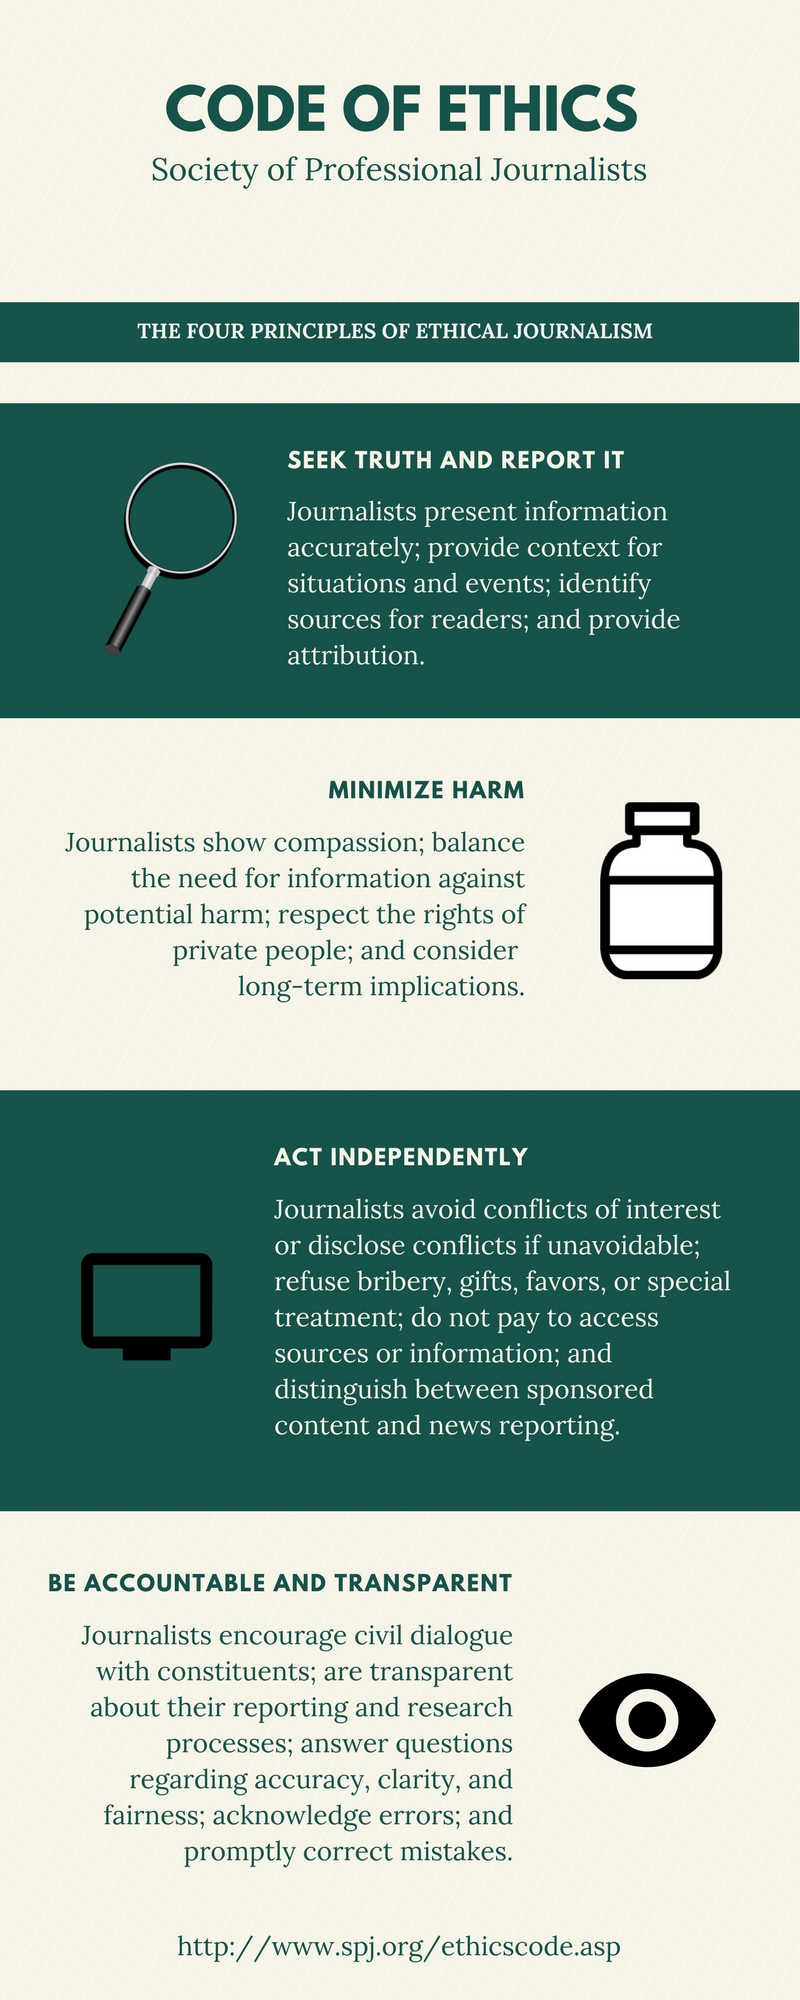 Society of Professional Journalists Code of Ethics. Four principles: Seek truth and report it, minimize harm, act independently, be accountable and transparent